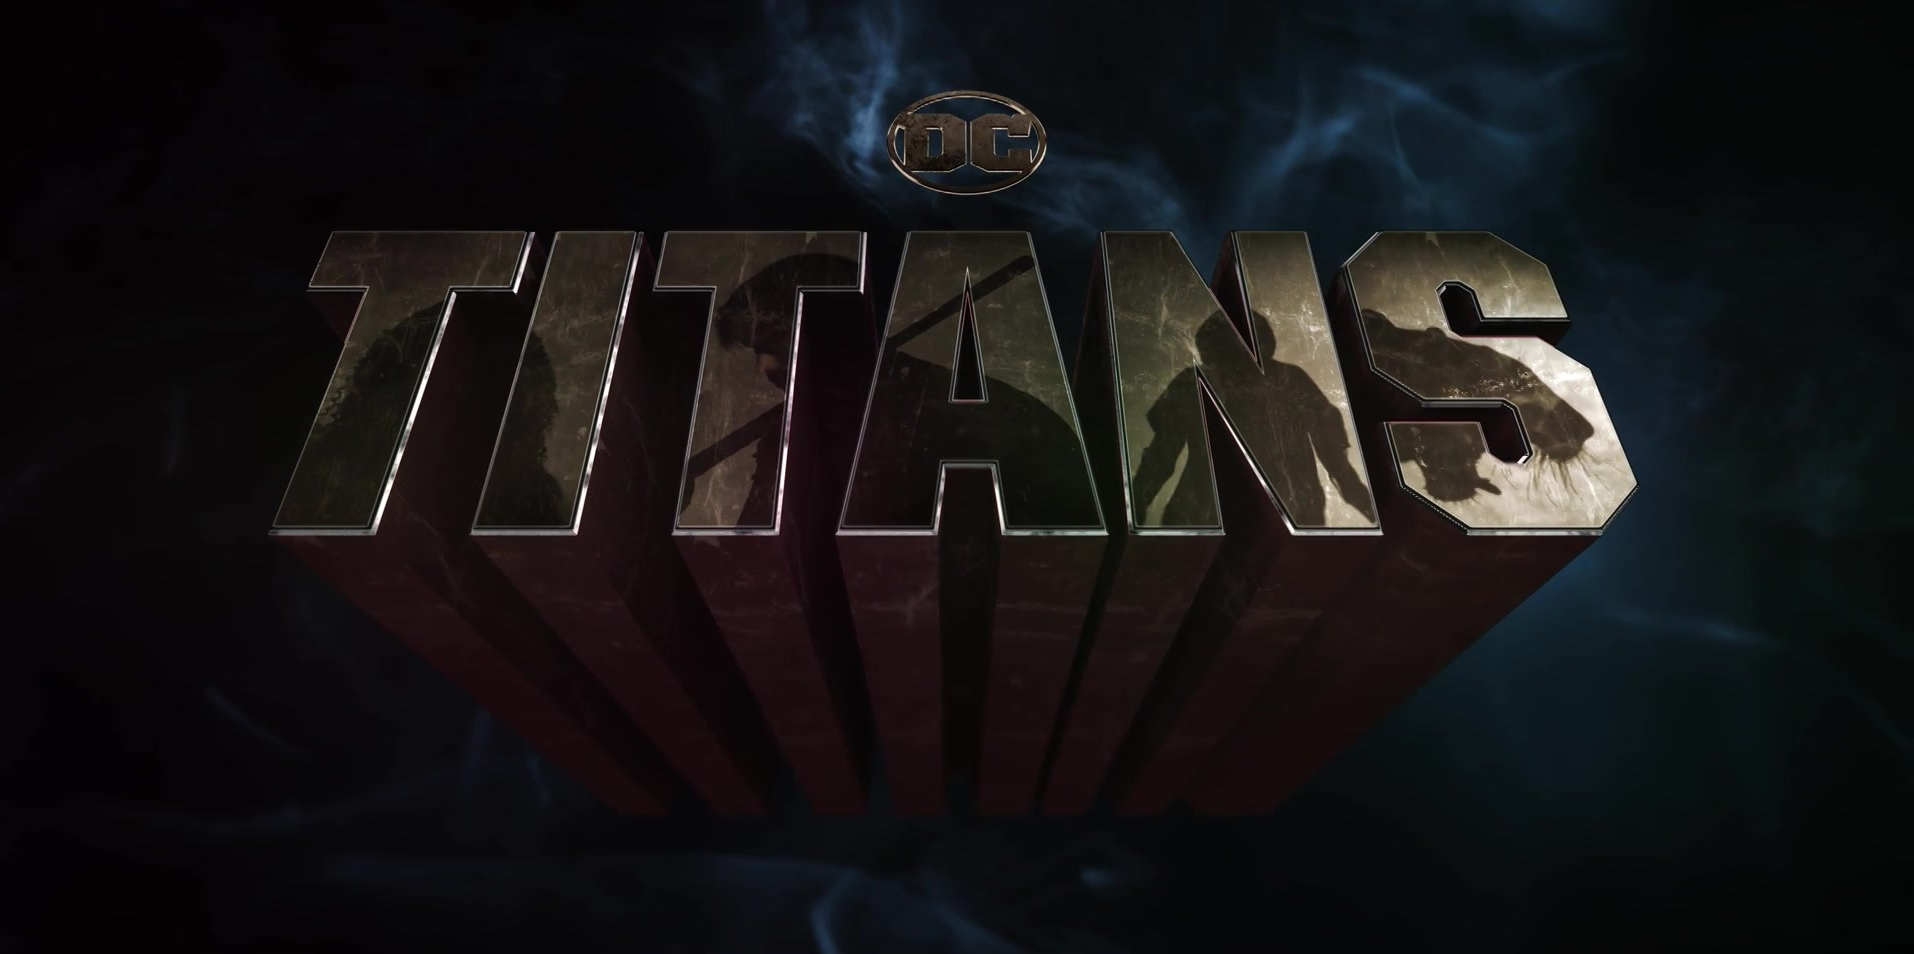 Titans (TV Series) Episode: Faux-Hawk